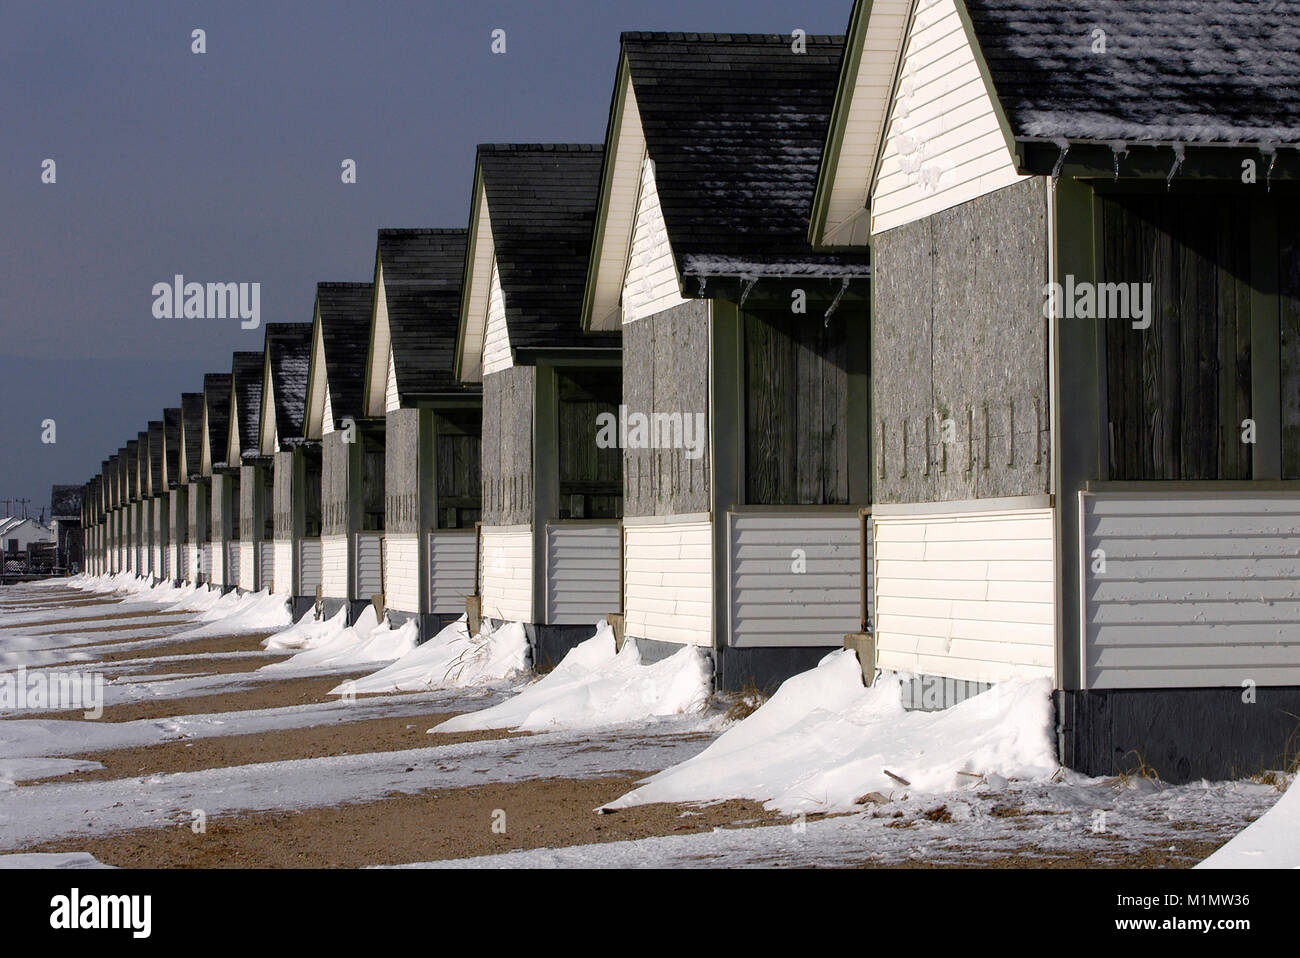 Cottages all buttoned up for winter on Cape Cod in Truro, Massachusetts, USA - Stock Image